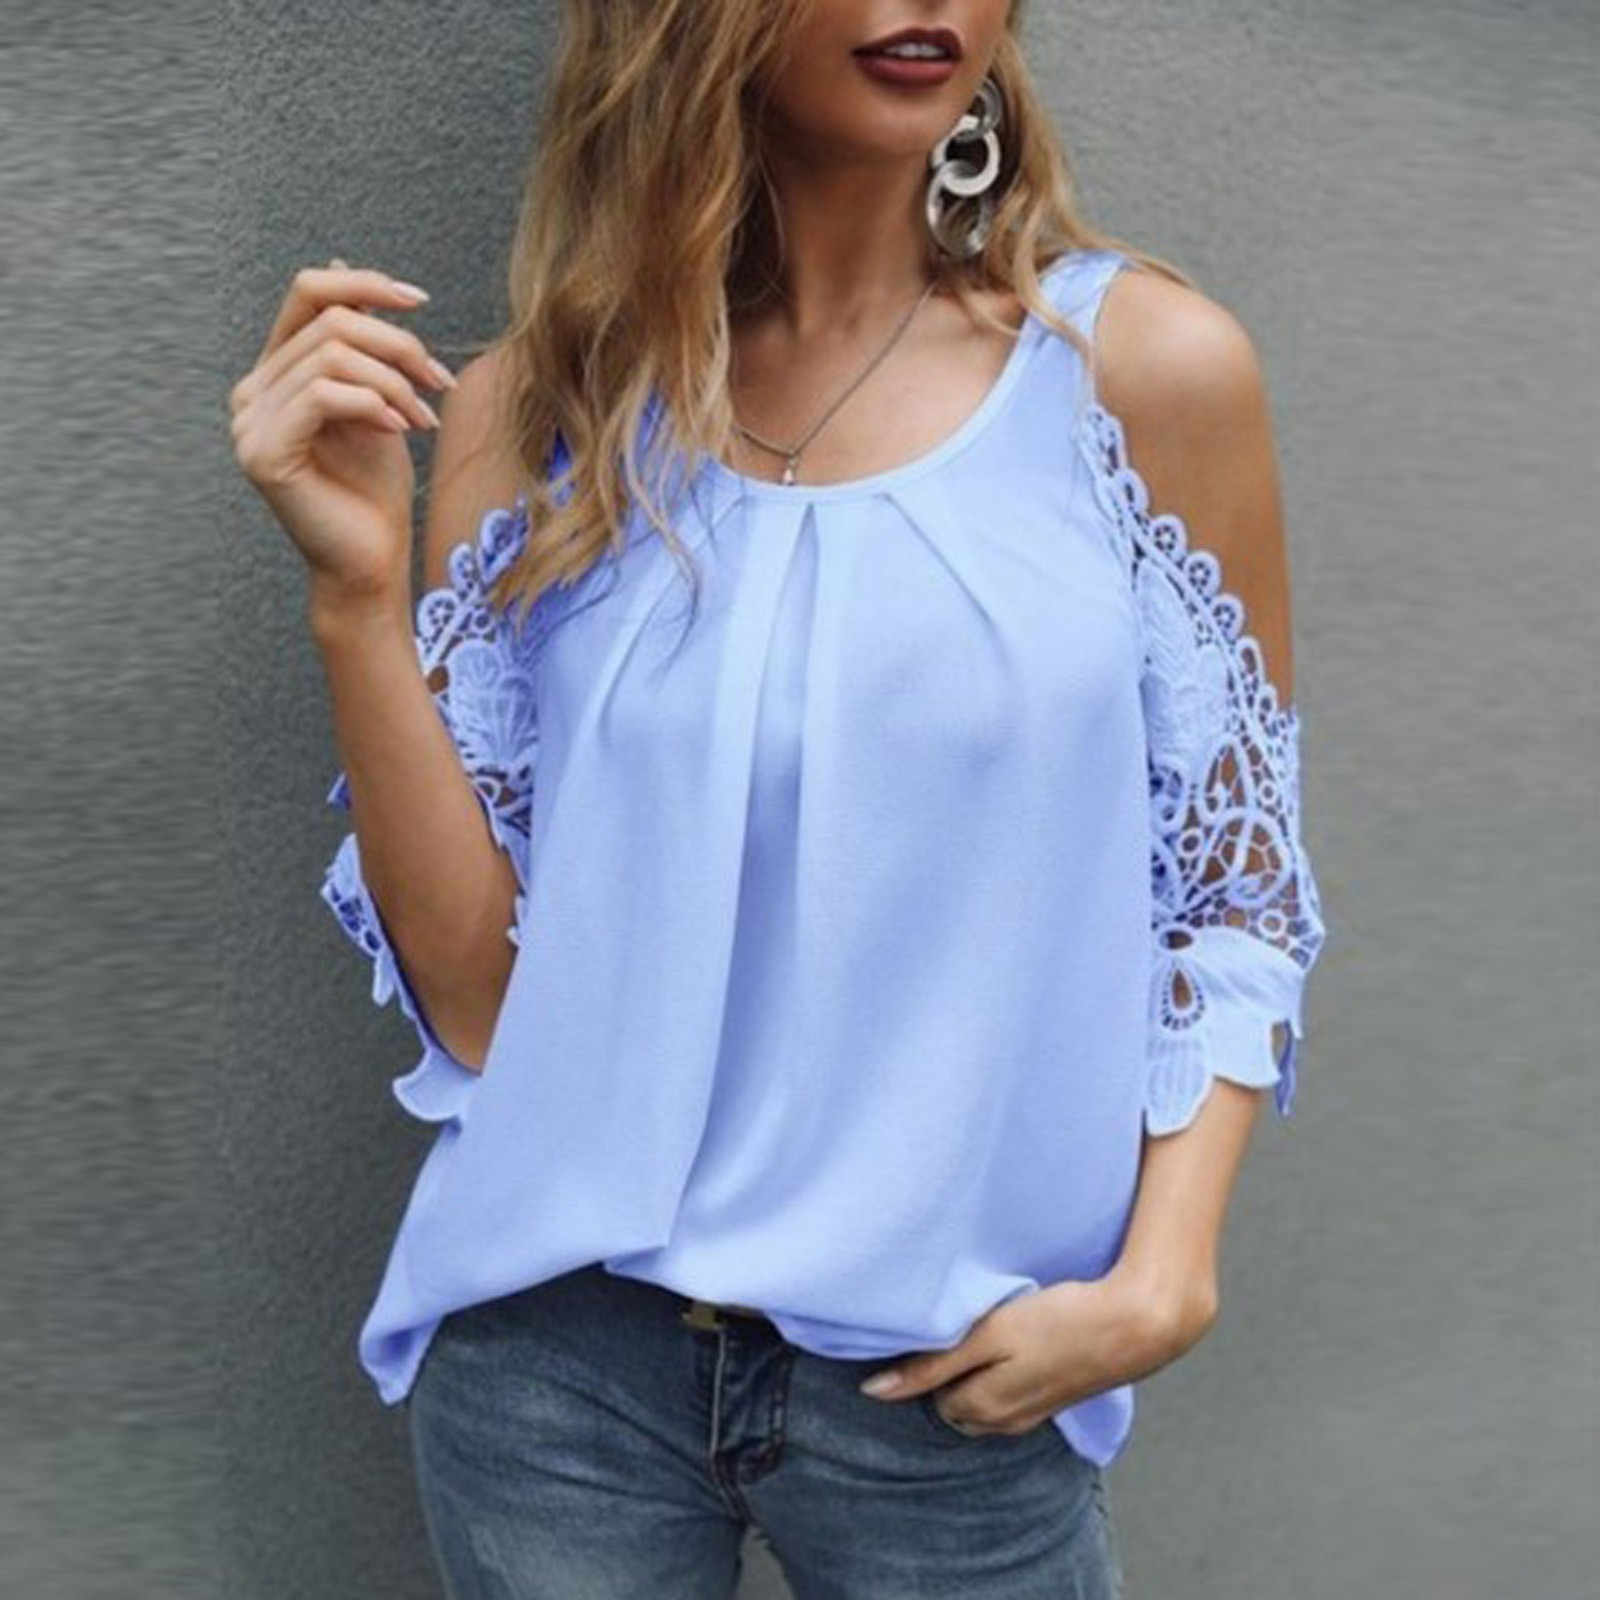 White Office Shirts For Ladies 2021 Summer New Plus Size Women's Fashion Loose Halter Lace Hollow Sleeve Sling Shirt Top Blouse Women Women's Blouses Women's Clothings